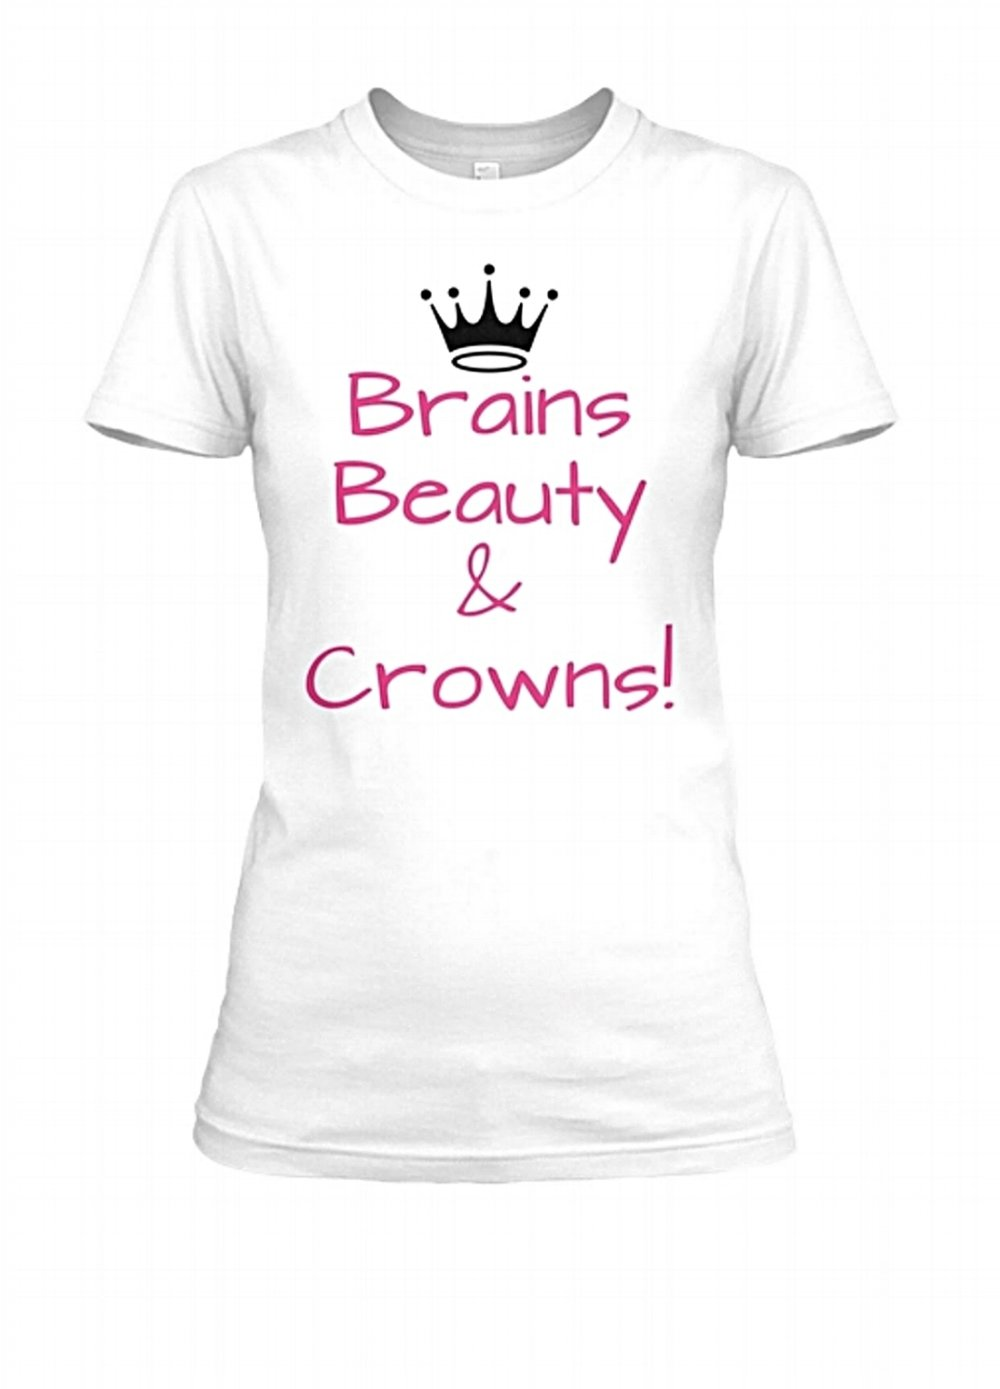 pageant shirt 2.jpg